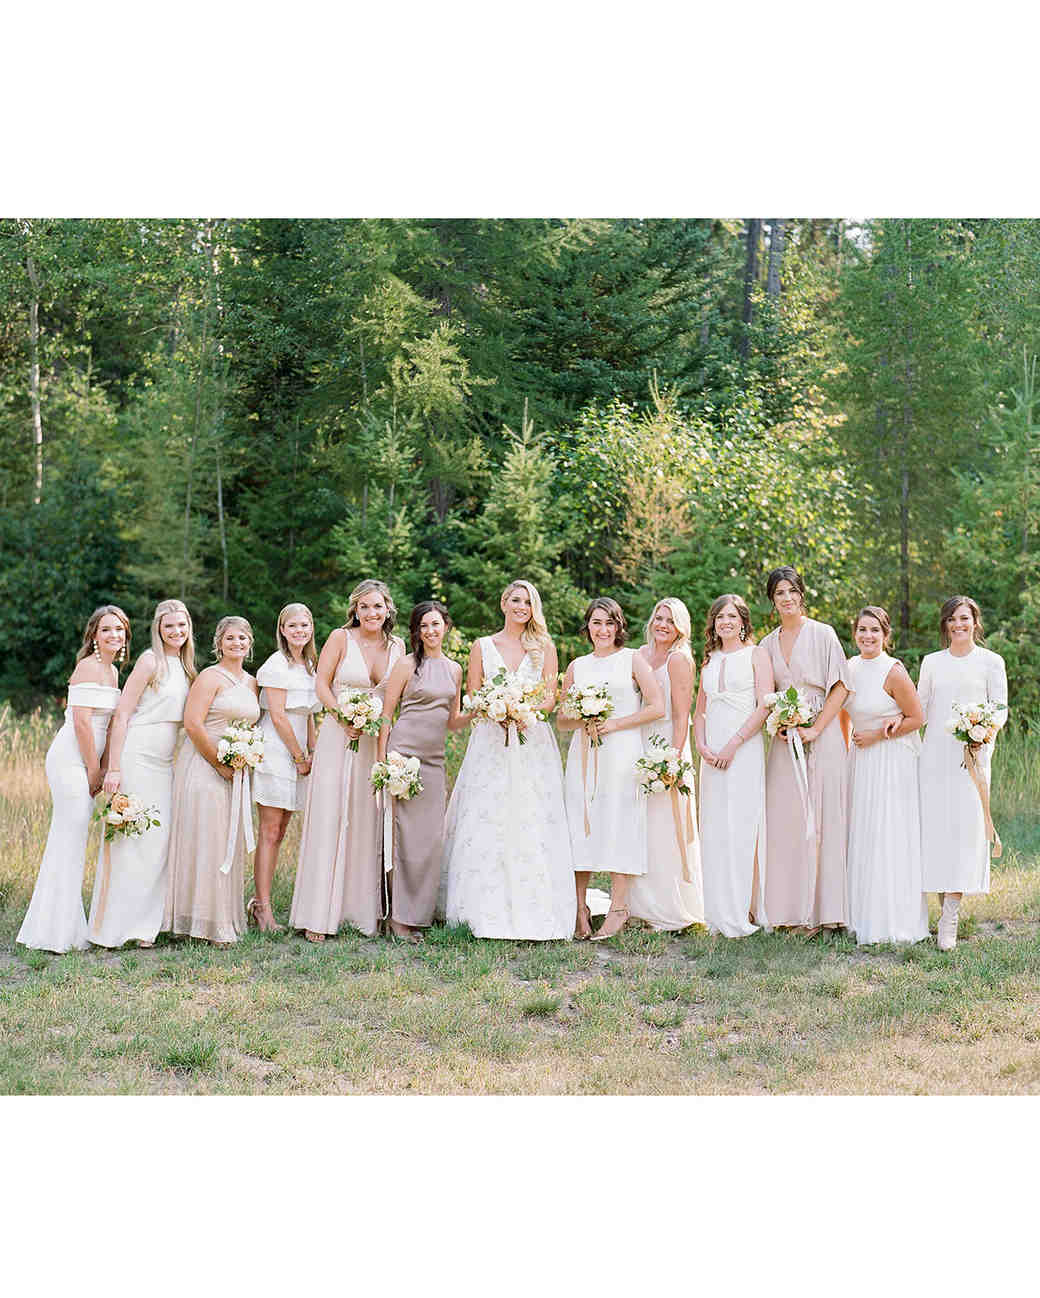 kaitlin jeremy wedding bride with bridesmaids